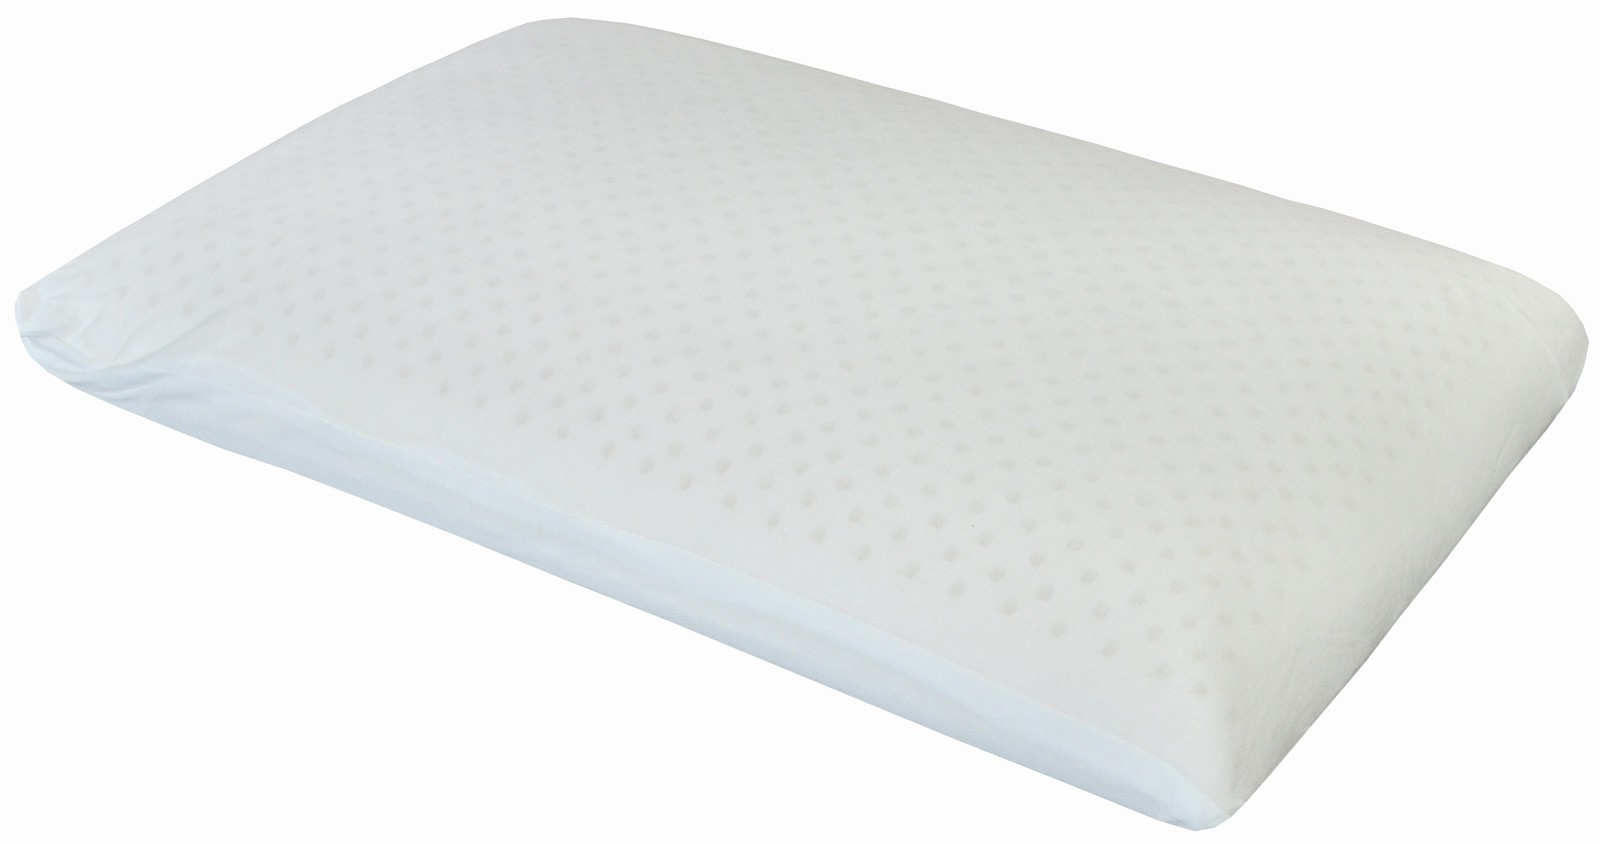 Standard latex pillow Regular Shape 60 x 40 x 12 cm